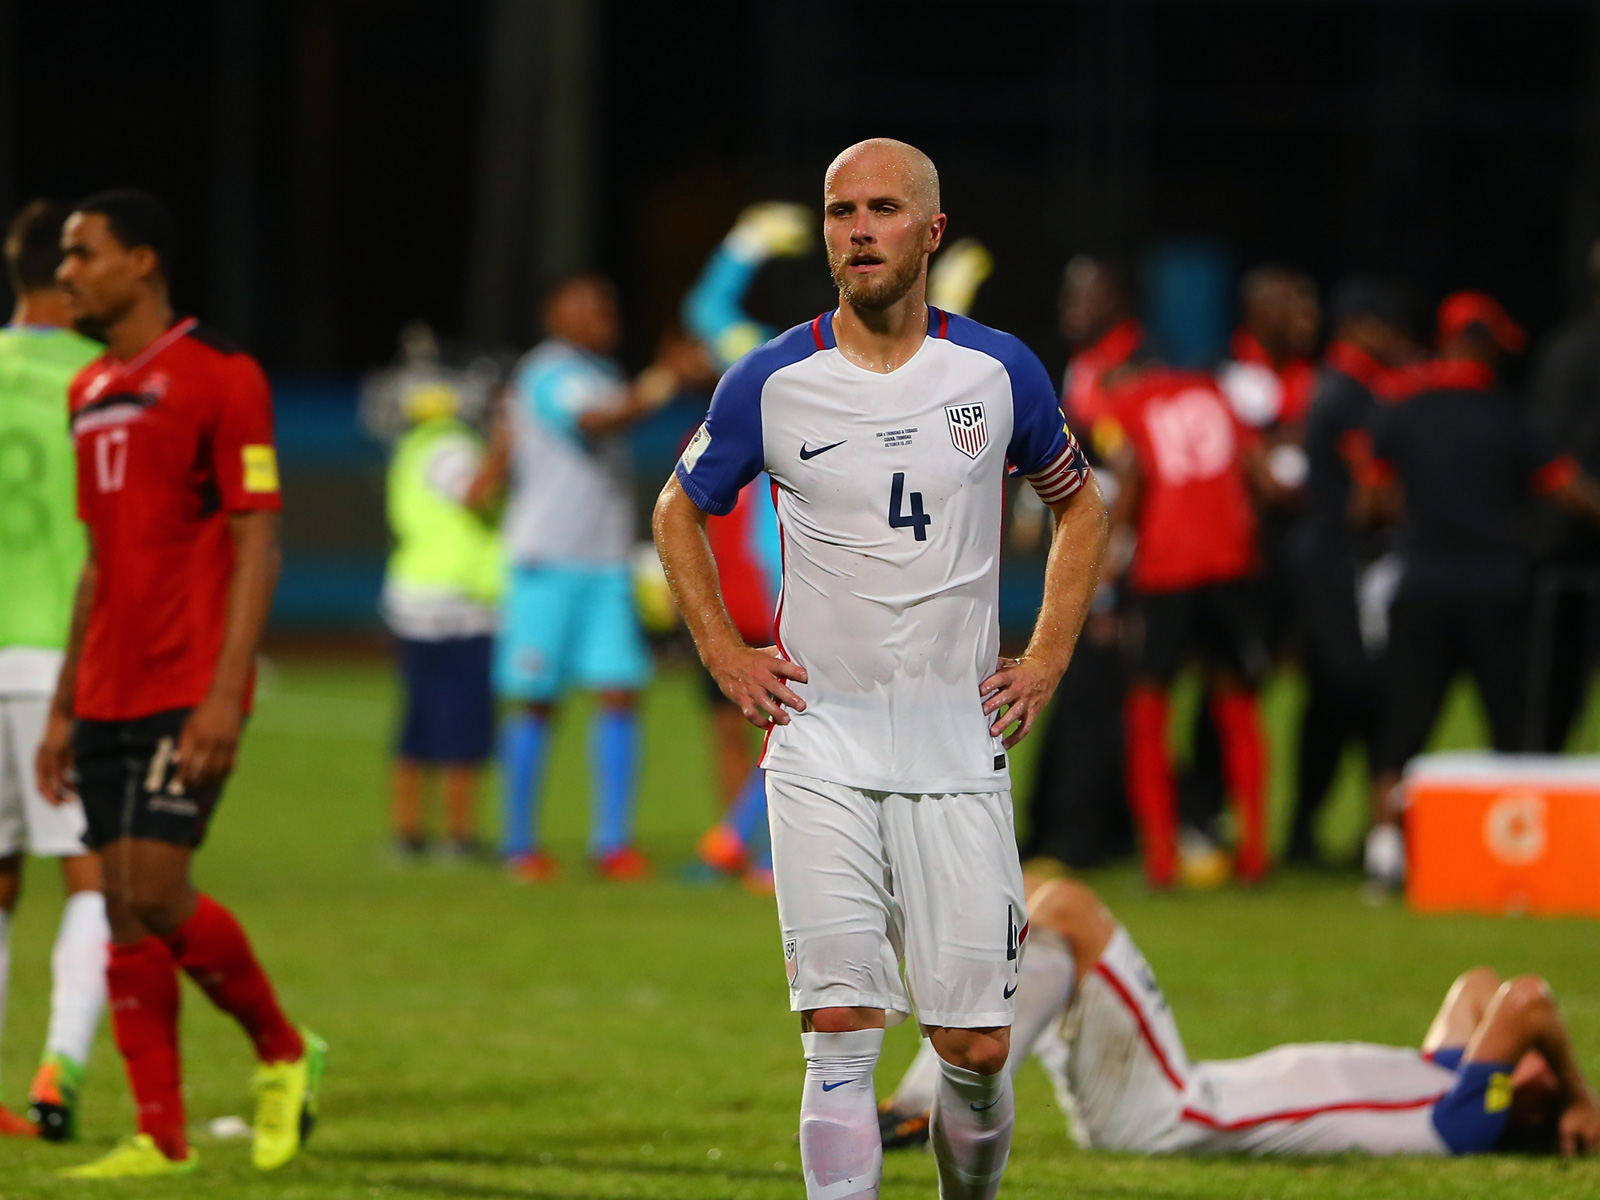 Michael Bradley captained the USA in its infamous loss to Trinidad & Tobago